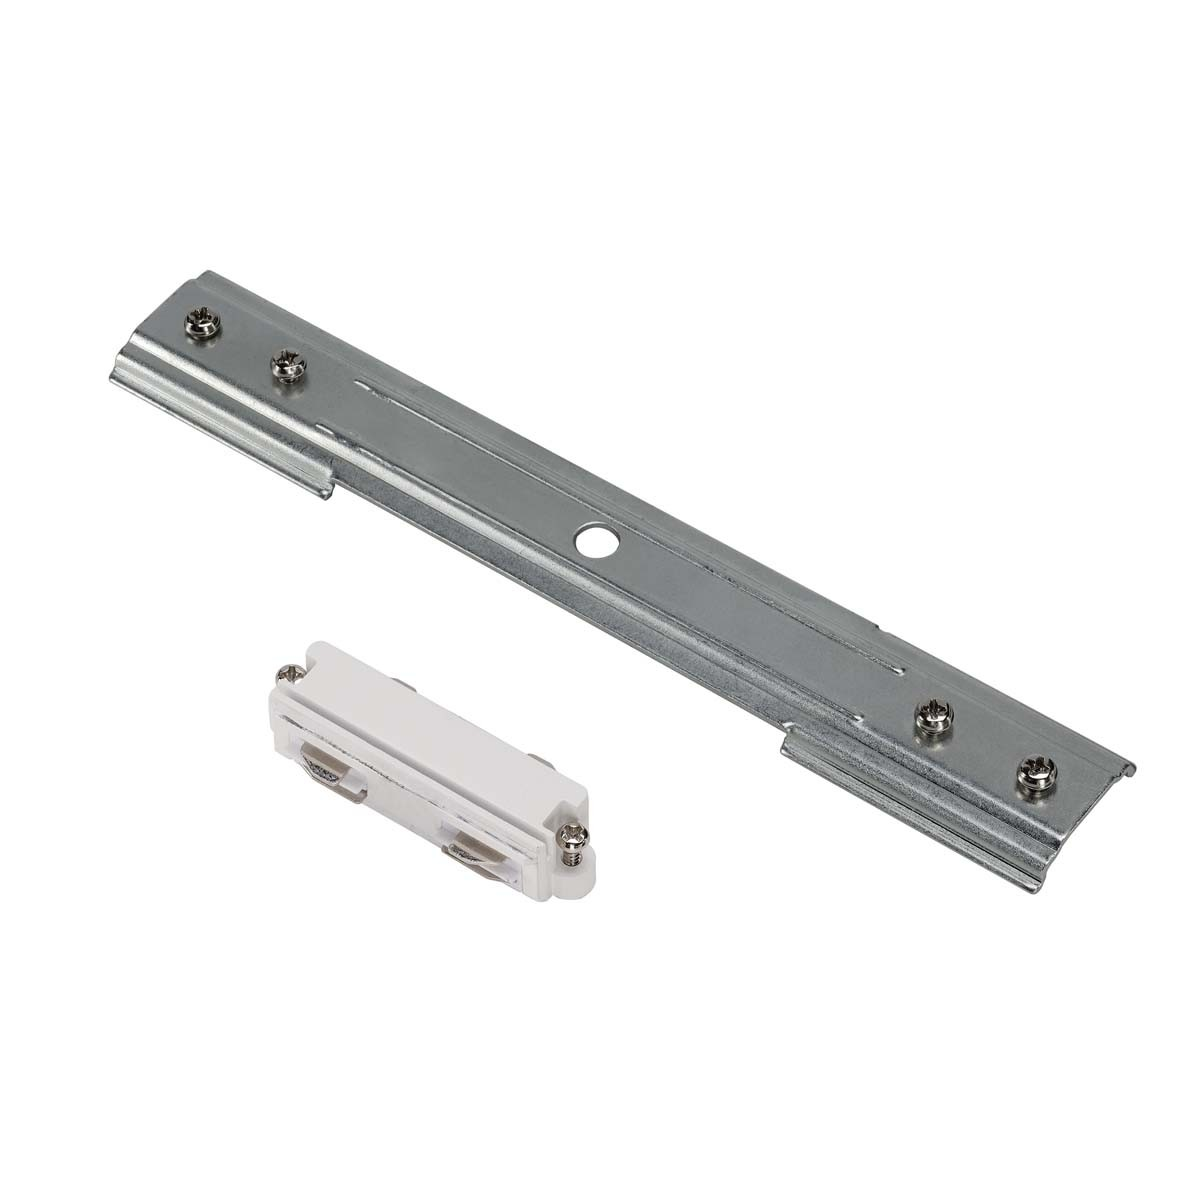 SLV 143271 Straight Coupler With Stabiliser White & Matt Nickel 1 Circuit 240V Recessed Track Accessory